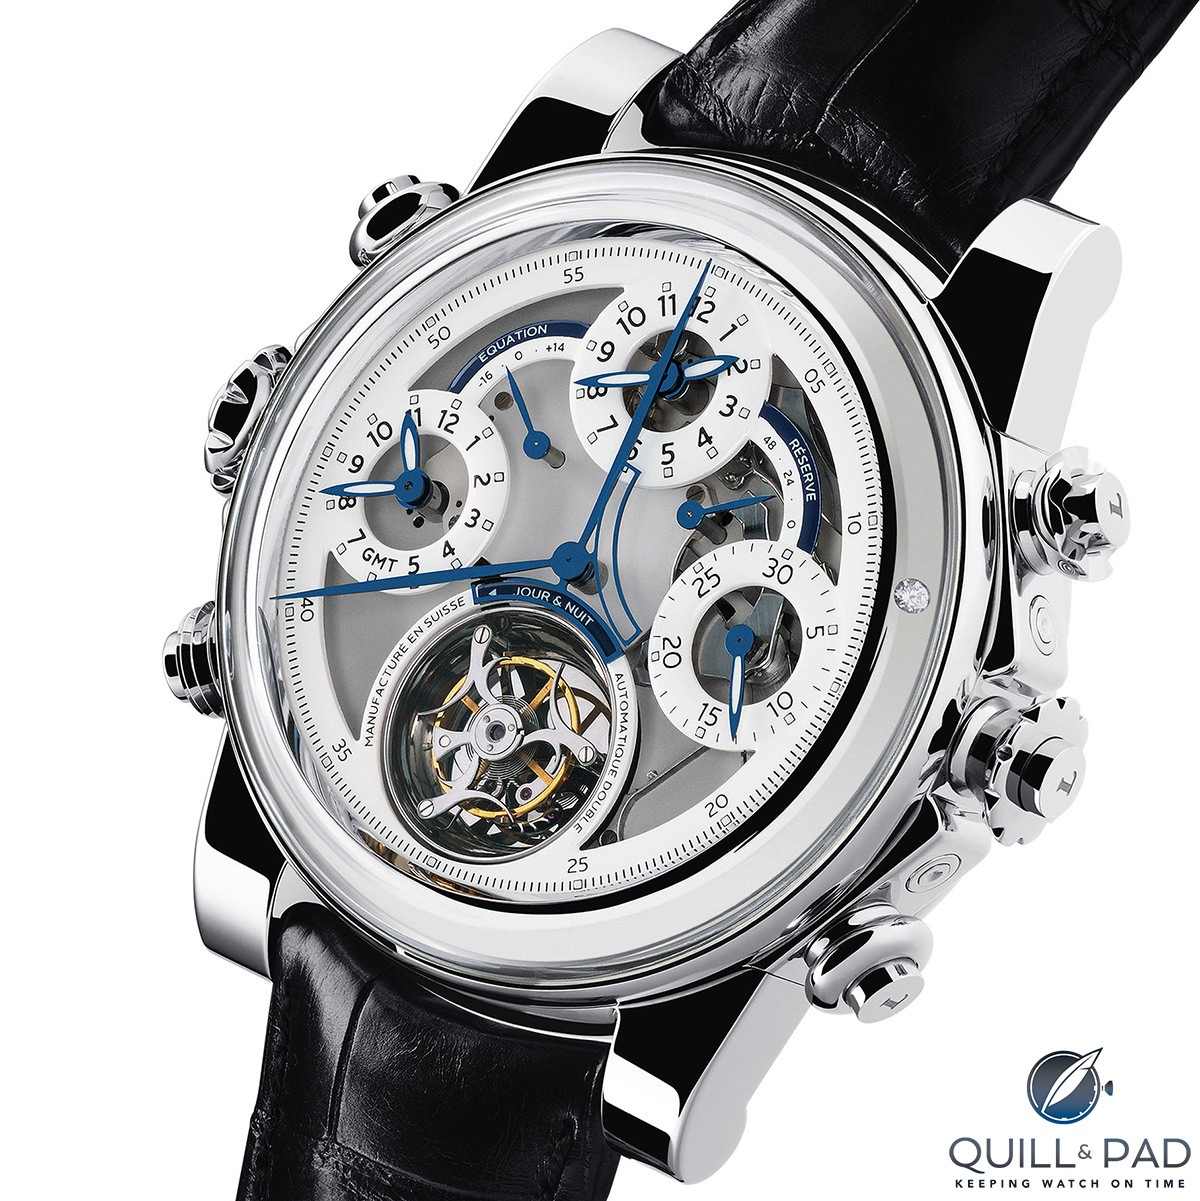 The time indication side of the Dominique Loiseau 1f4 featuring among other indications a split seconds chronograph, power reserve, equation of time, GMT, flying tourbillon and peripheral automatic winding rotor with a single embedded diamond